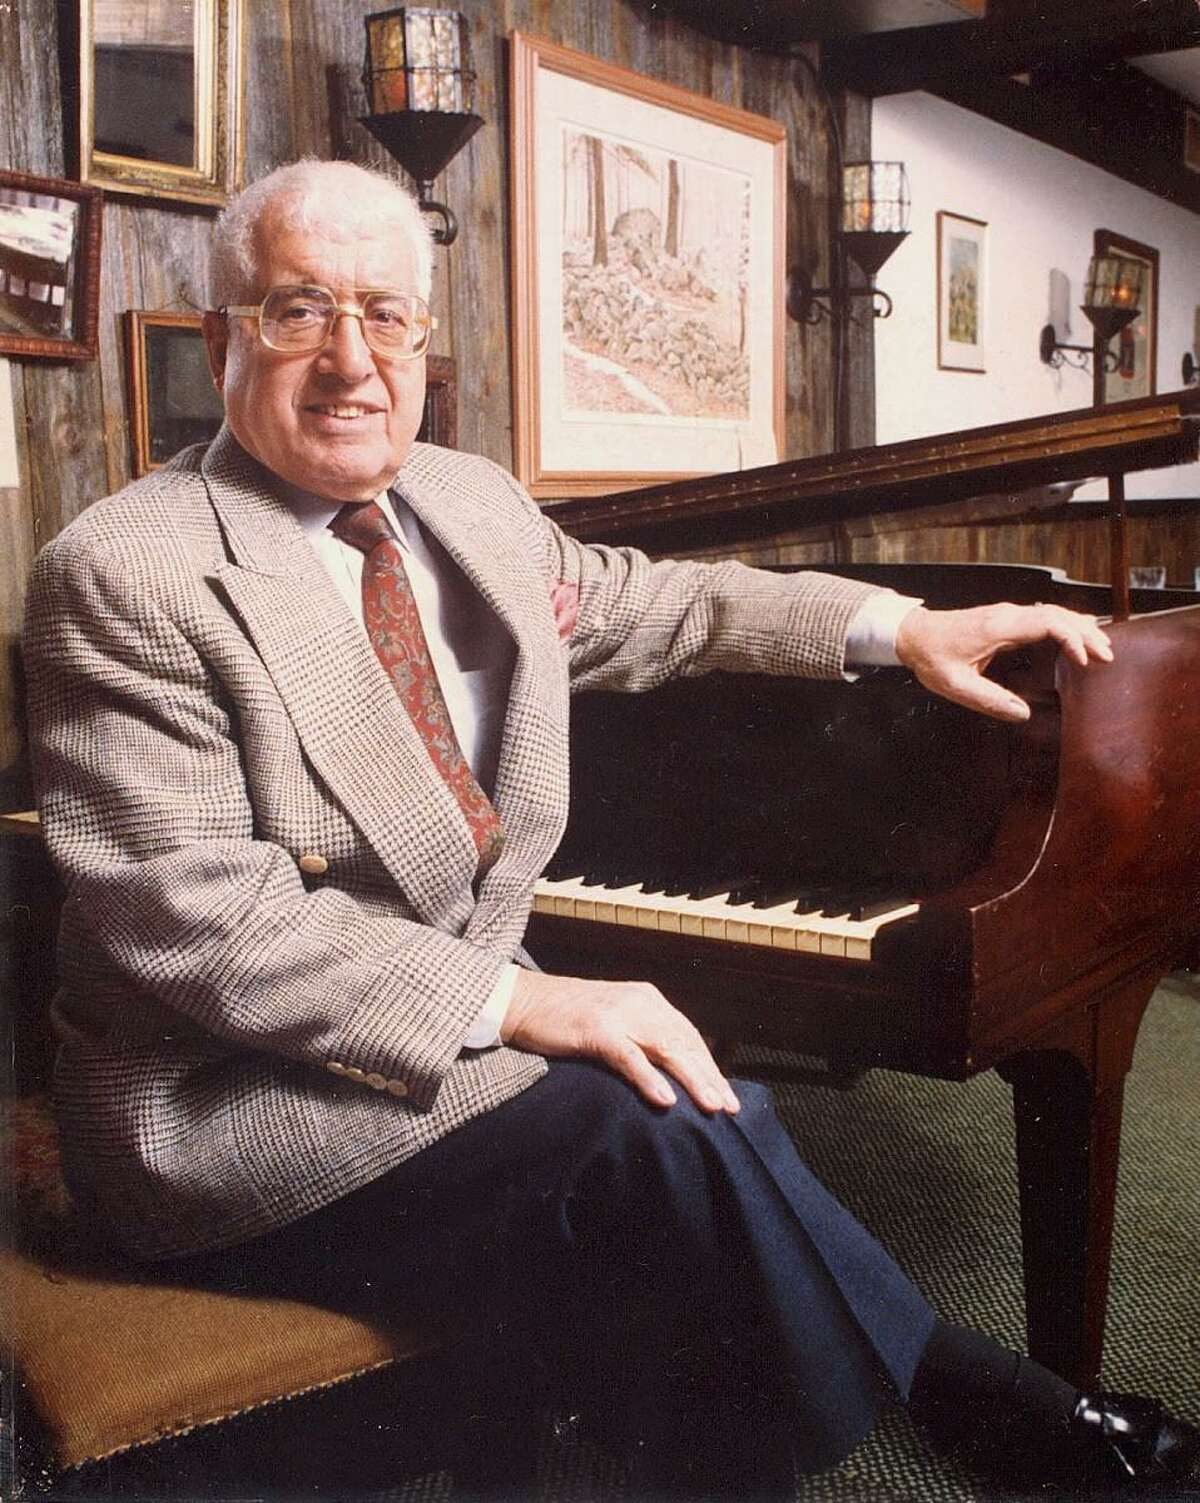 Music in the Nave is hosting a jazz and classical music concert to commemorate the centennial of pianist Dolph Traymon at St. Andrew's Episcopal Church on November 10.